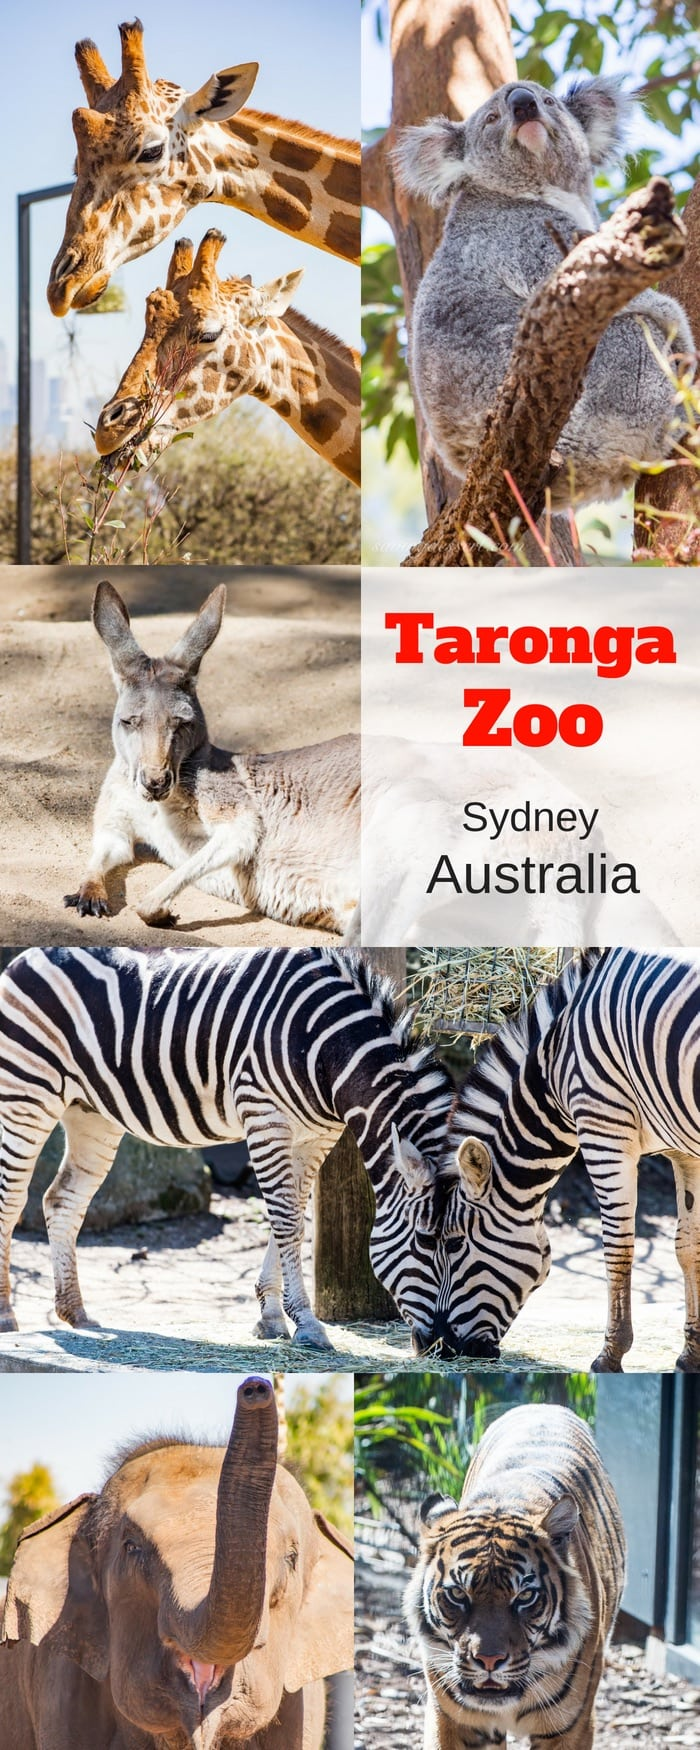 A collage of animals from the Taronga Zoo in Sydney Australia